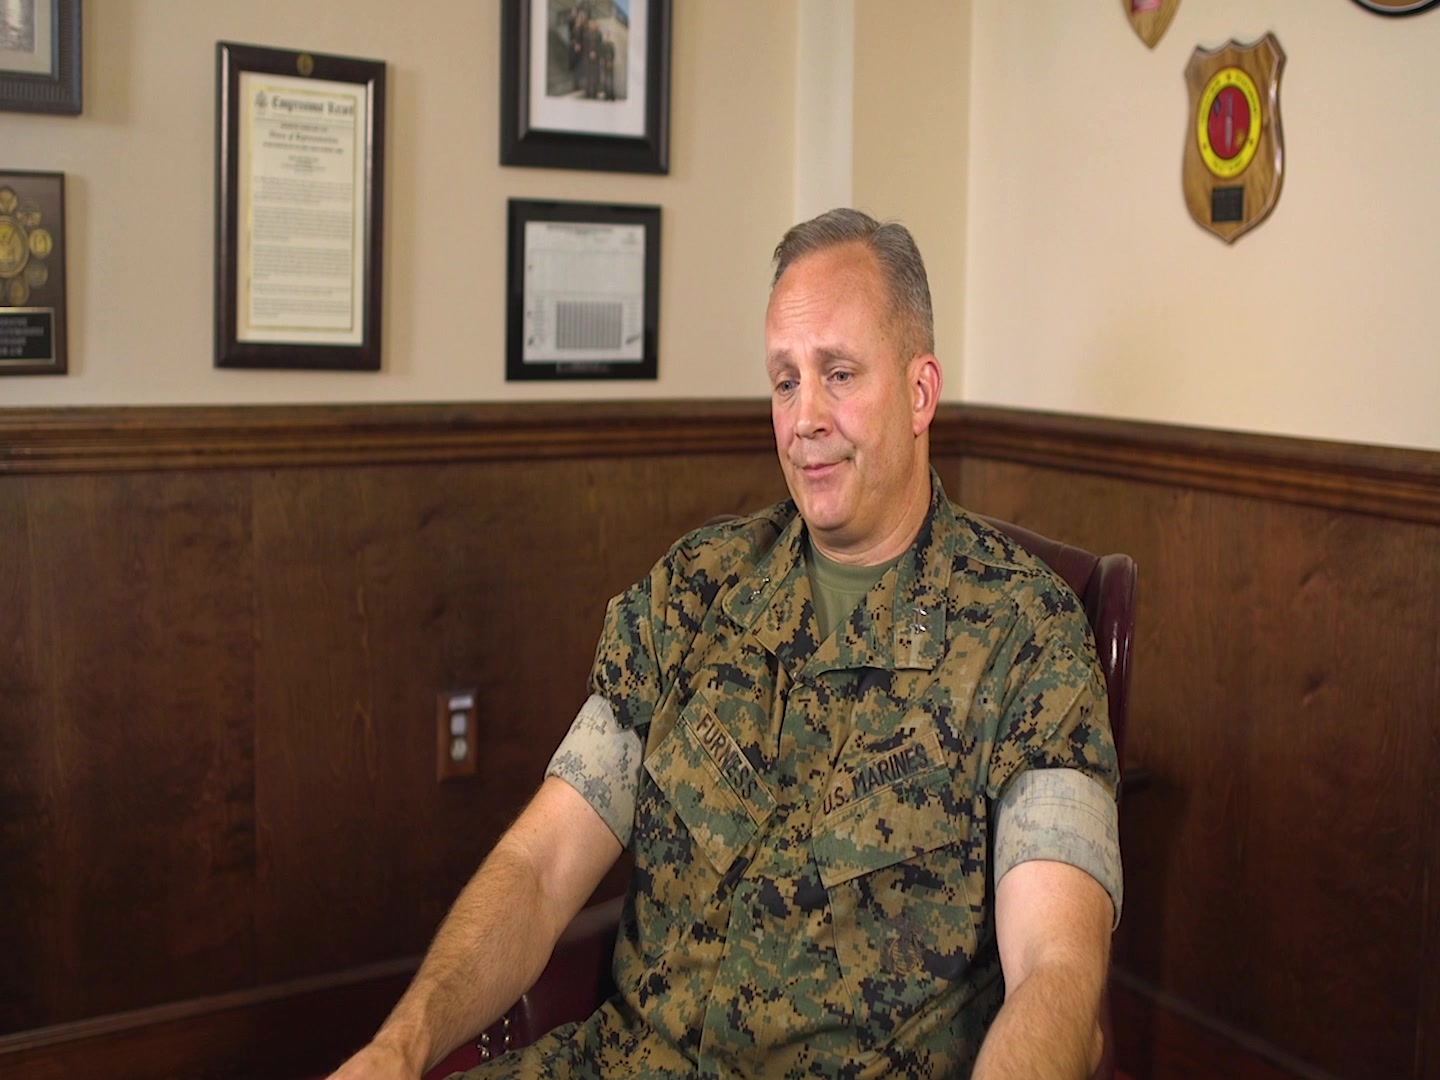 U.S. Marine Corps Maj. Gen. David J. Furness, the Commanding General (CG) of 2d Marine Division (MARDIV), reflects on his initial impressions on becoming the 2d MARDIV CG as part of the series Reflections on Command at Camp Lejeune, North Carolina, May 28, 2020. Reflections on Command is a nine-week video series highlighting Furness' time as the 2d MARDIV CG leading up to his Change of Command in August 2020. (U.S. Marine Corps video by Lance Cpl. Andrew Smith)